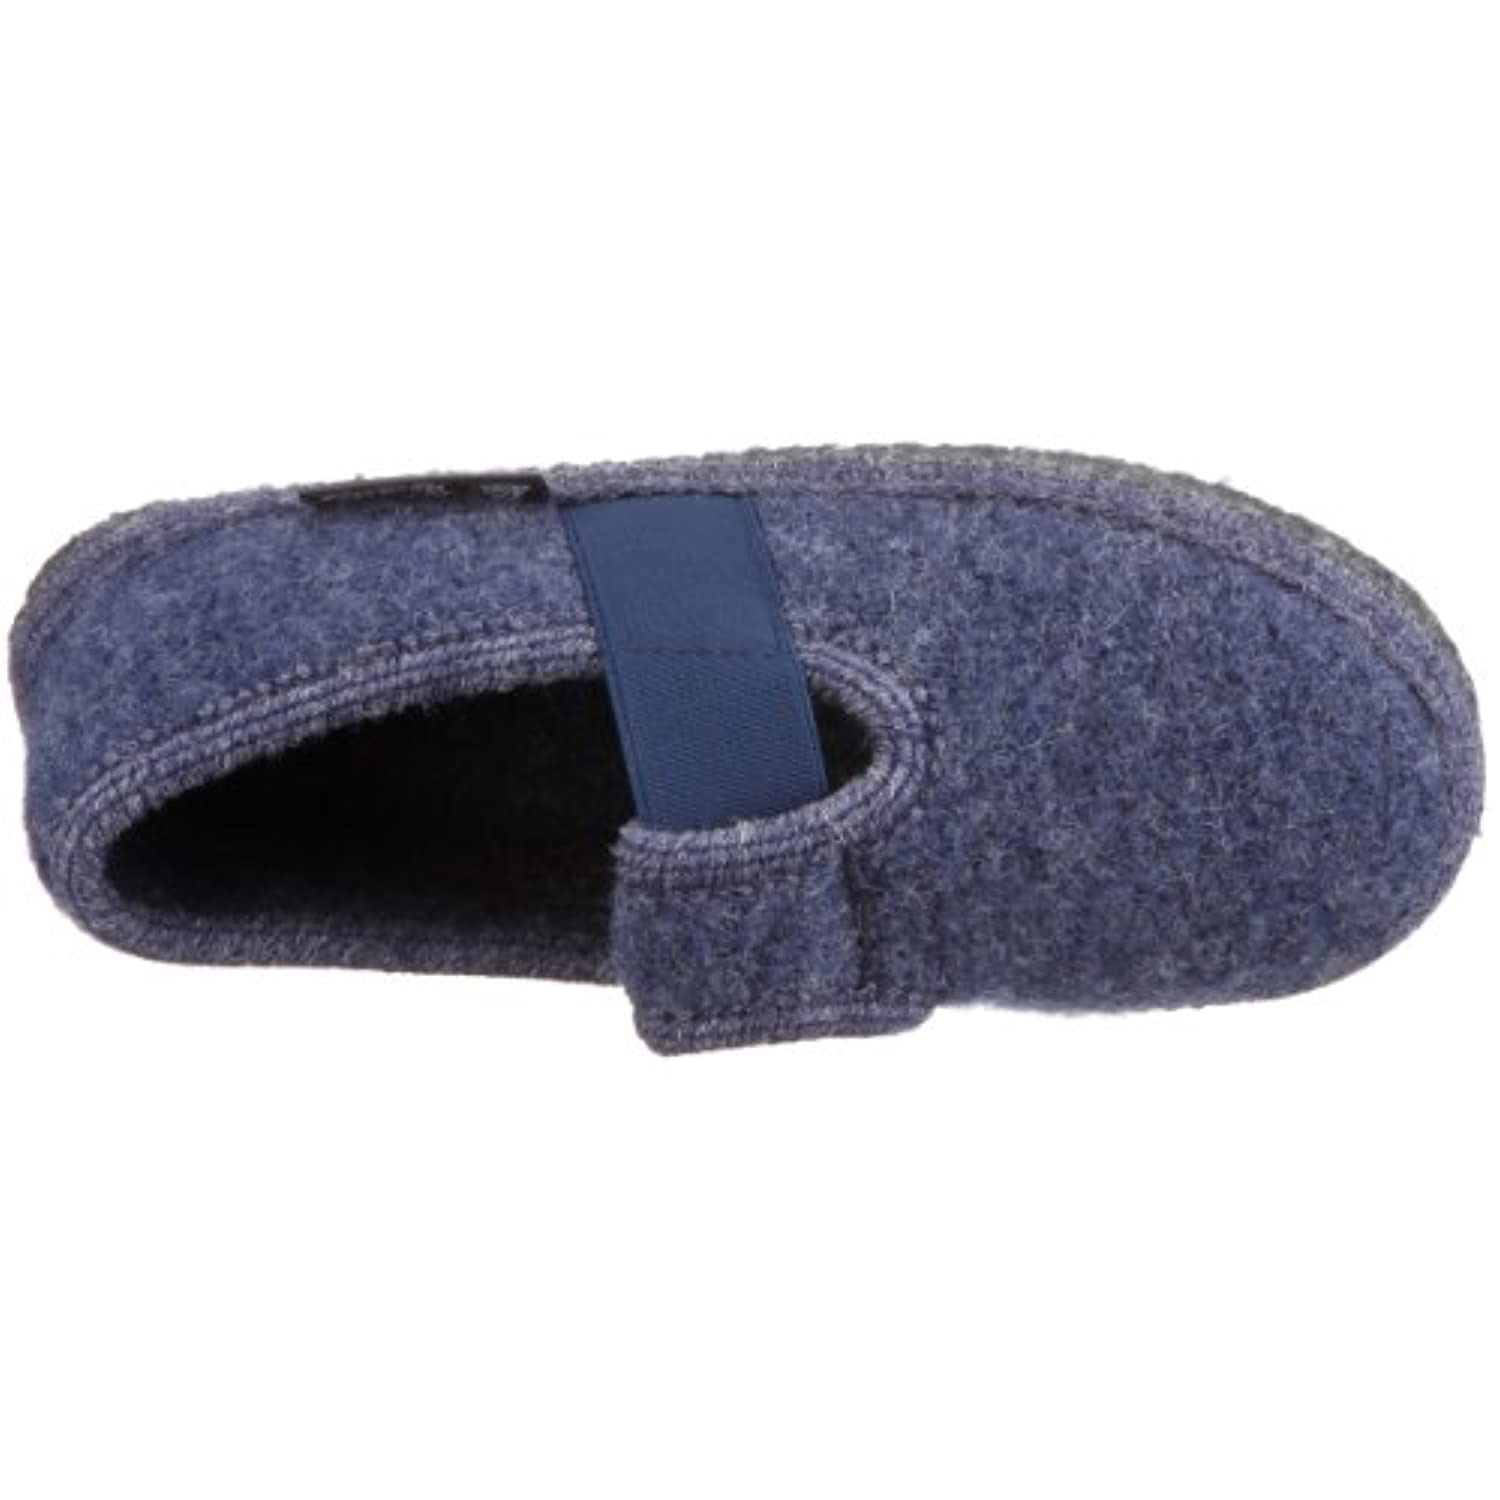 Haflinger  Joschi Slippers Unisex-Child  Blue Blau (jeans 72) Size: 23